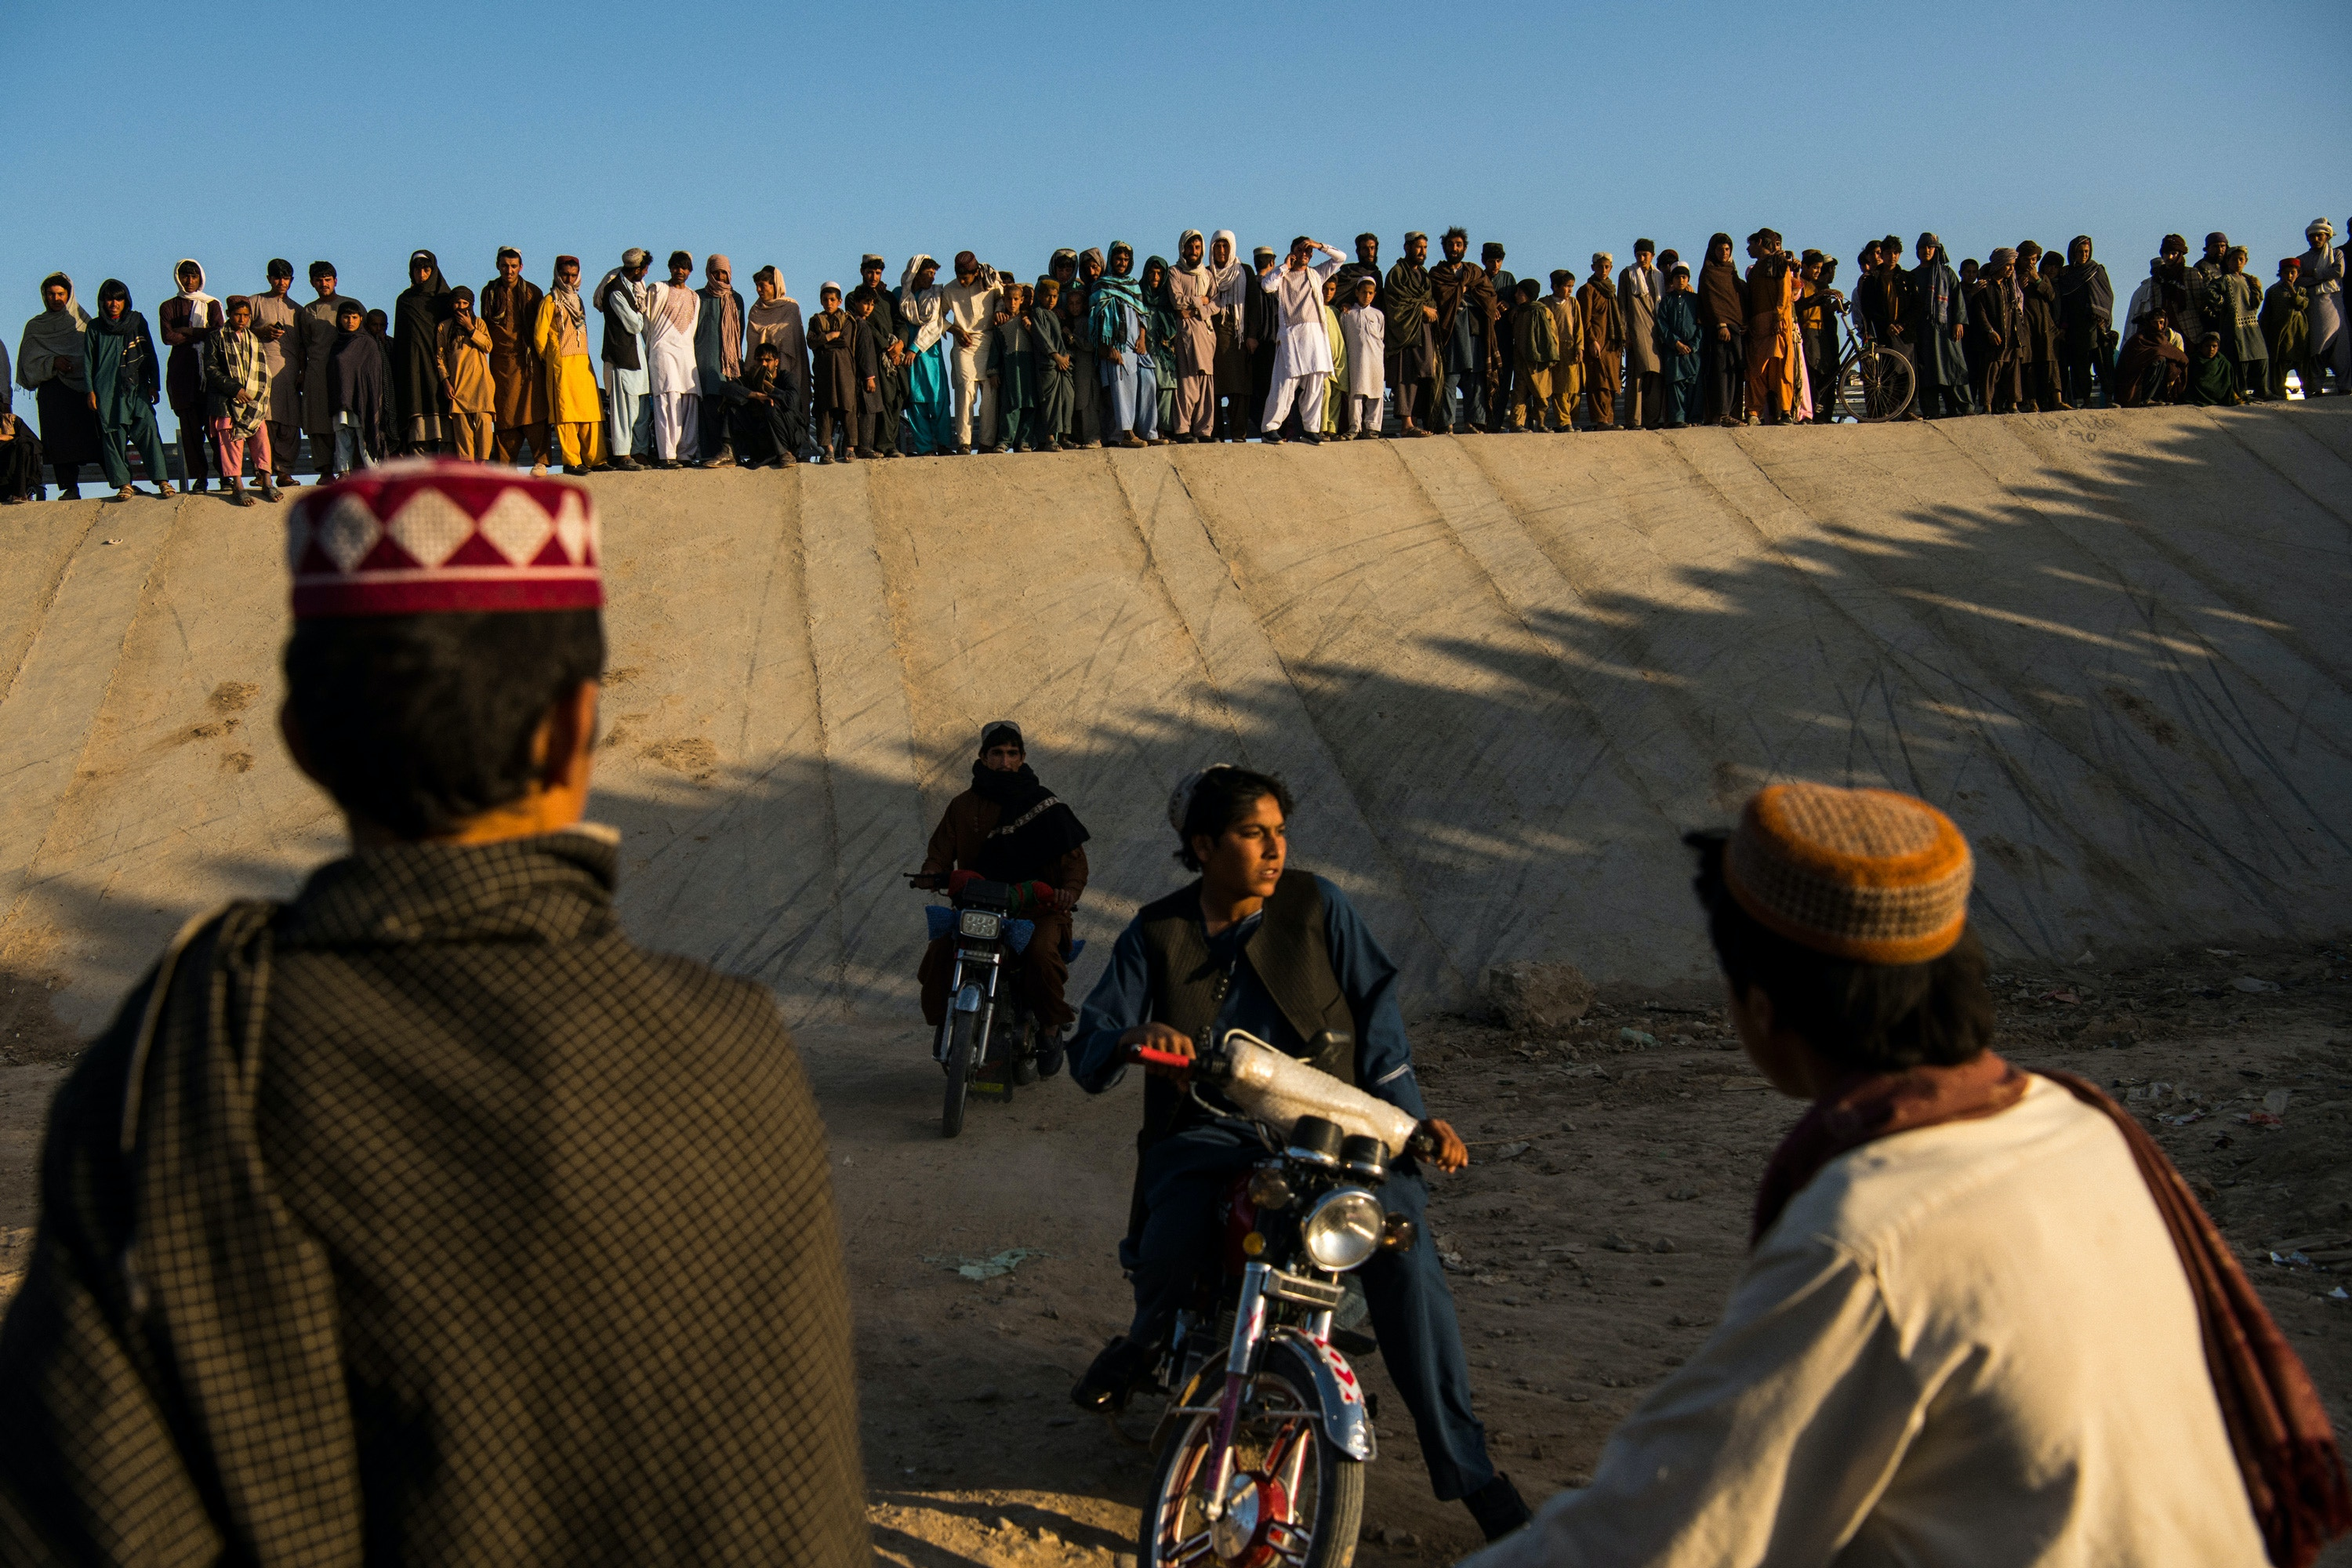 "On the final afternoon of a one-week partial ceasefire between the Taliban, the Afghan government, and U.S. forces, men and boys descended a bridge in Chah-e Anjir, outside Helmand's capital Lashkar Gah, to watch motorcyclists ride up its steep concrete embankment and perform tricks. When asked about the occasion, one onlooker, Omar, said ""It's Friday, and the last hours of the ceasefire."""